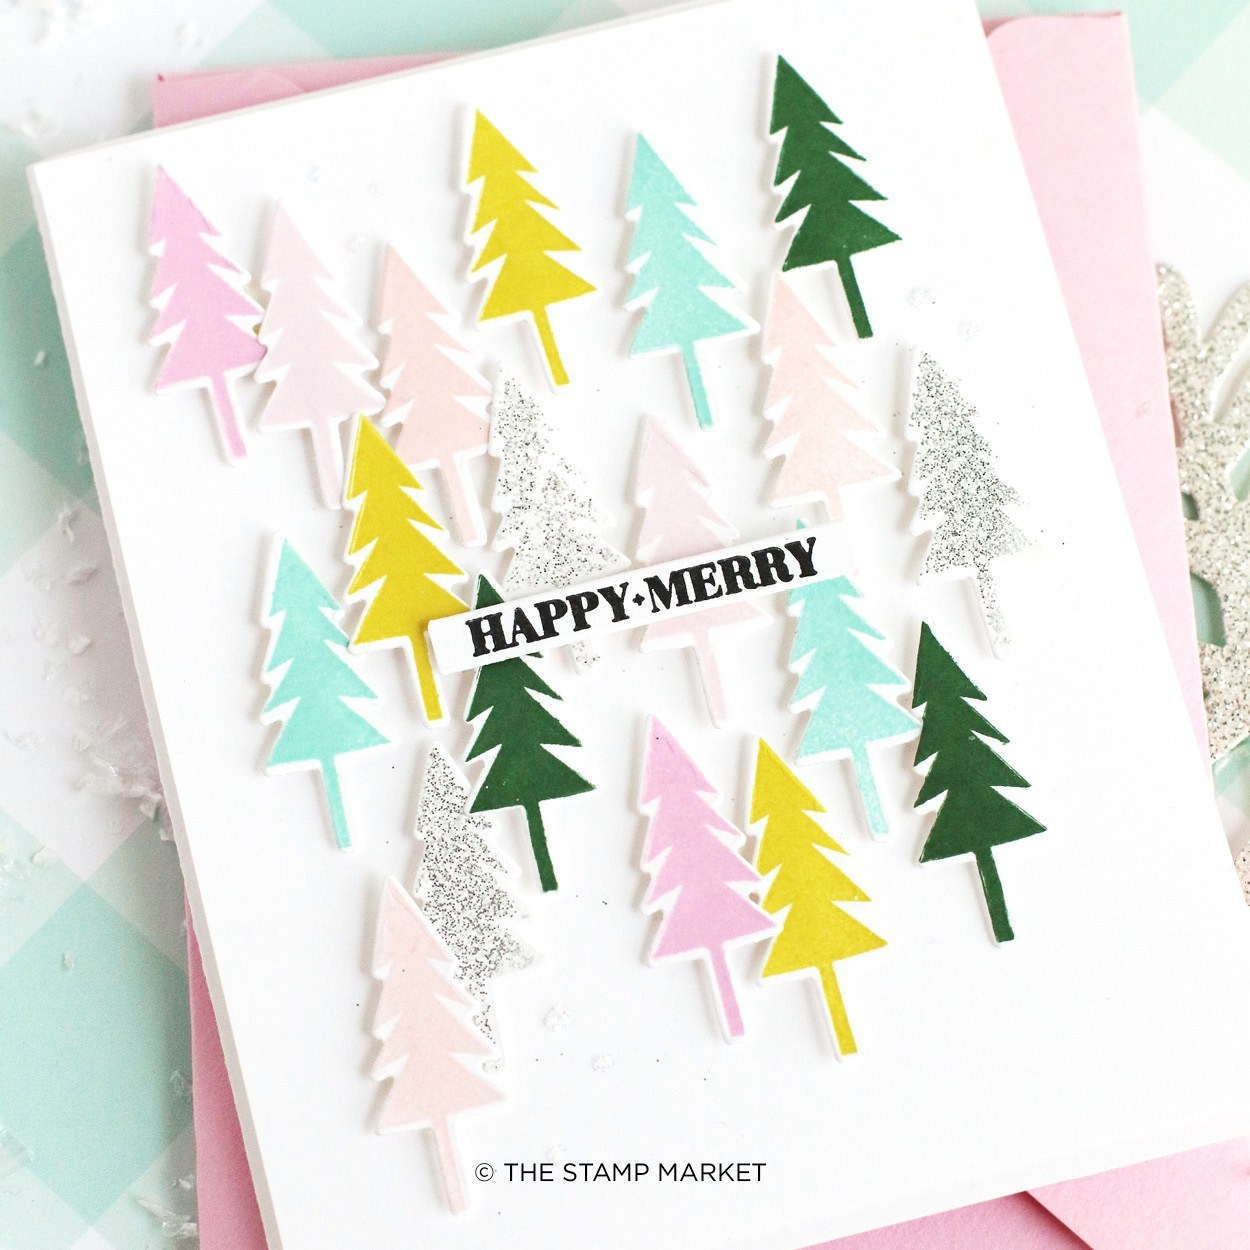 The Stamp Market Stamp - Happy + Merry